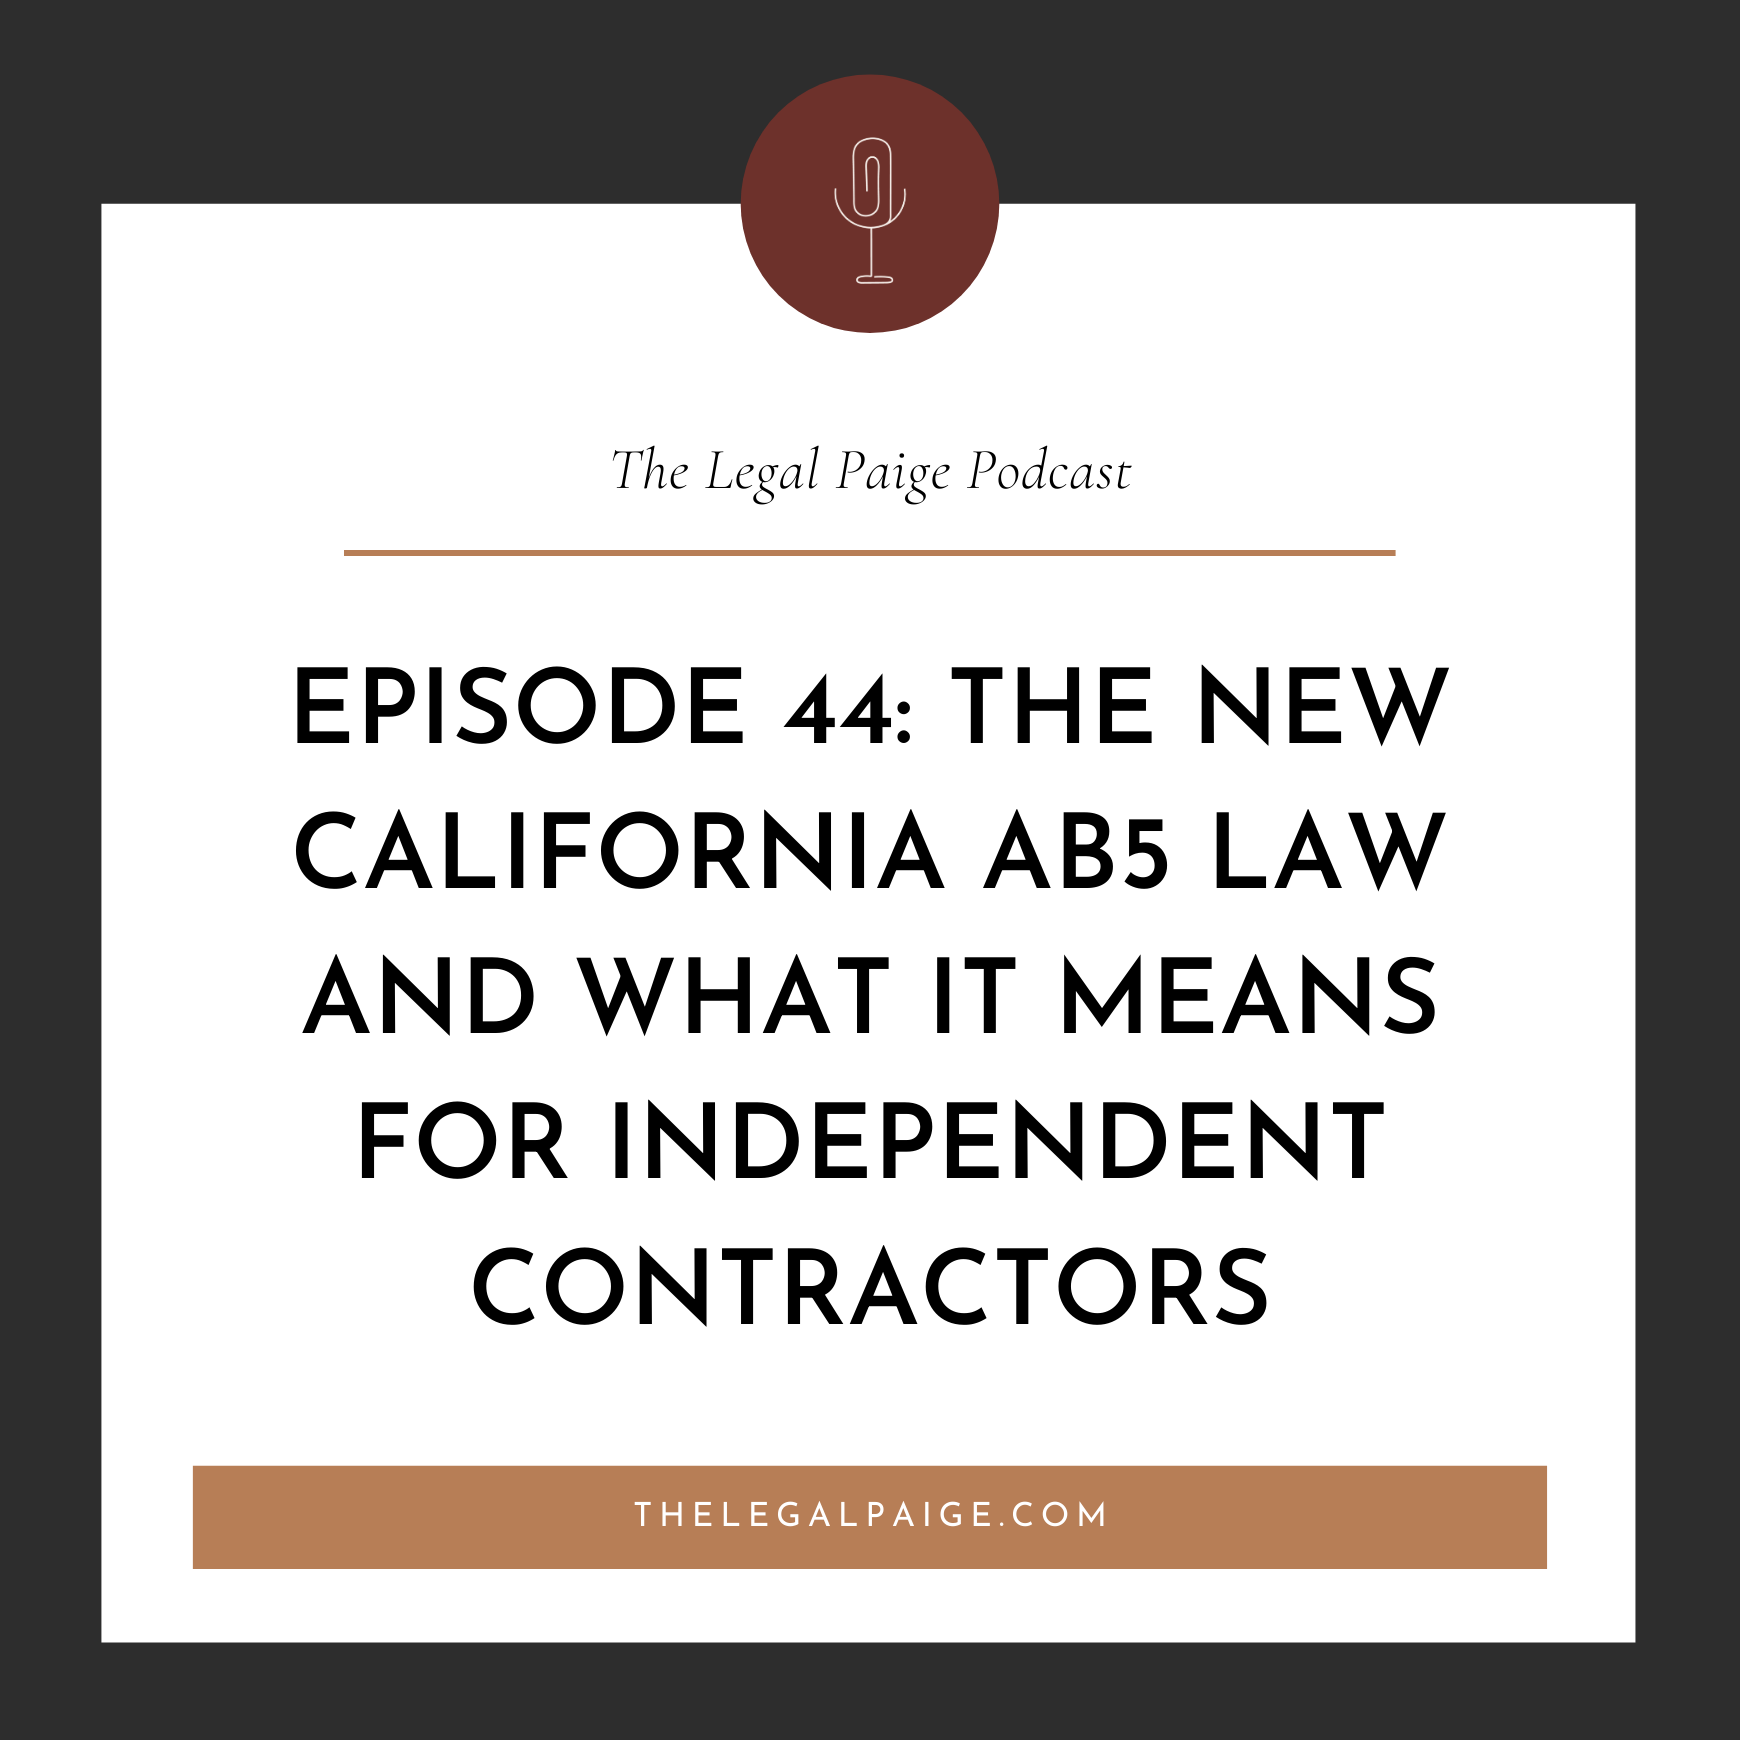 Ep 44: The New California AB5 Law and What it Means for Independent Contractors